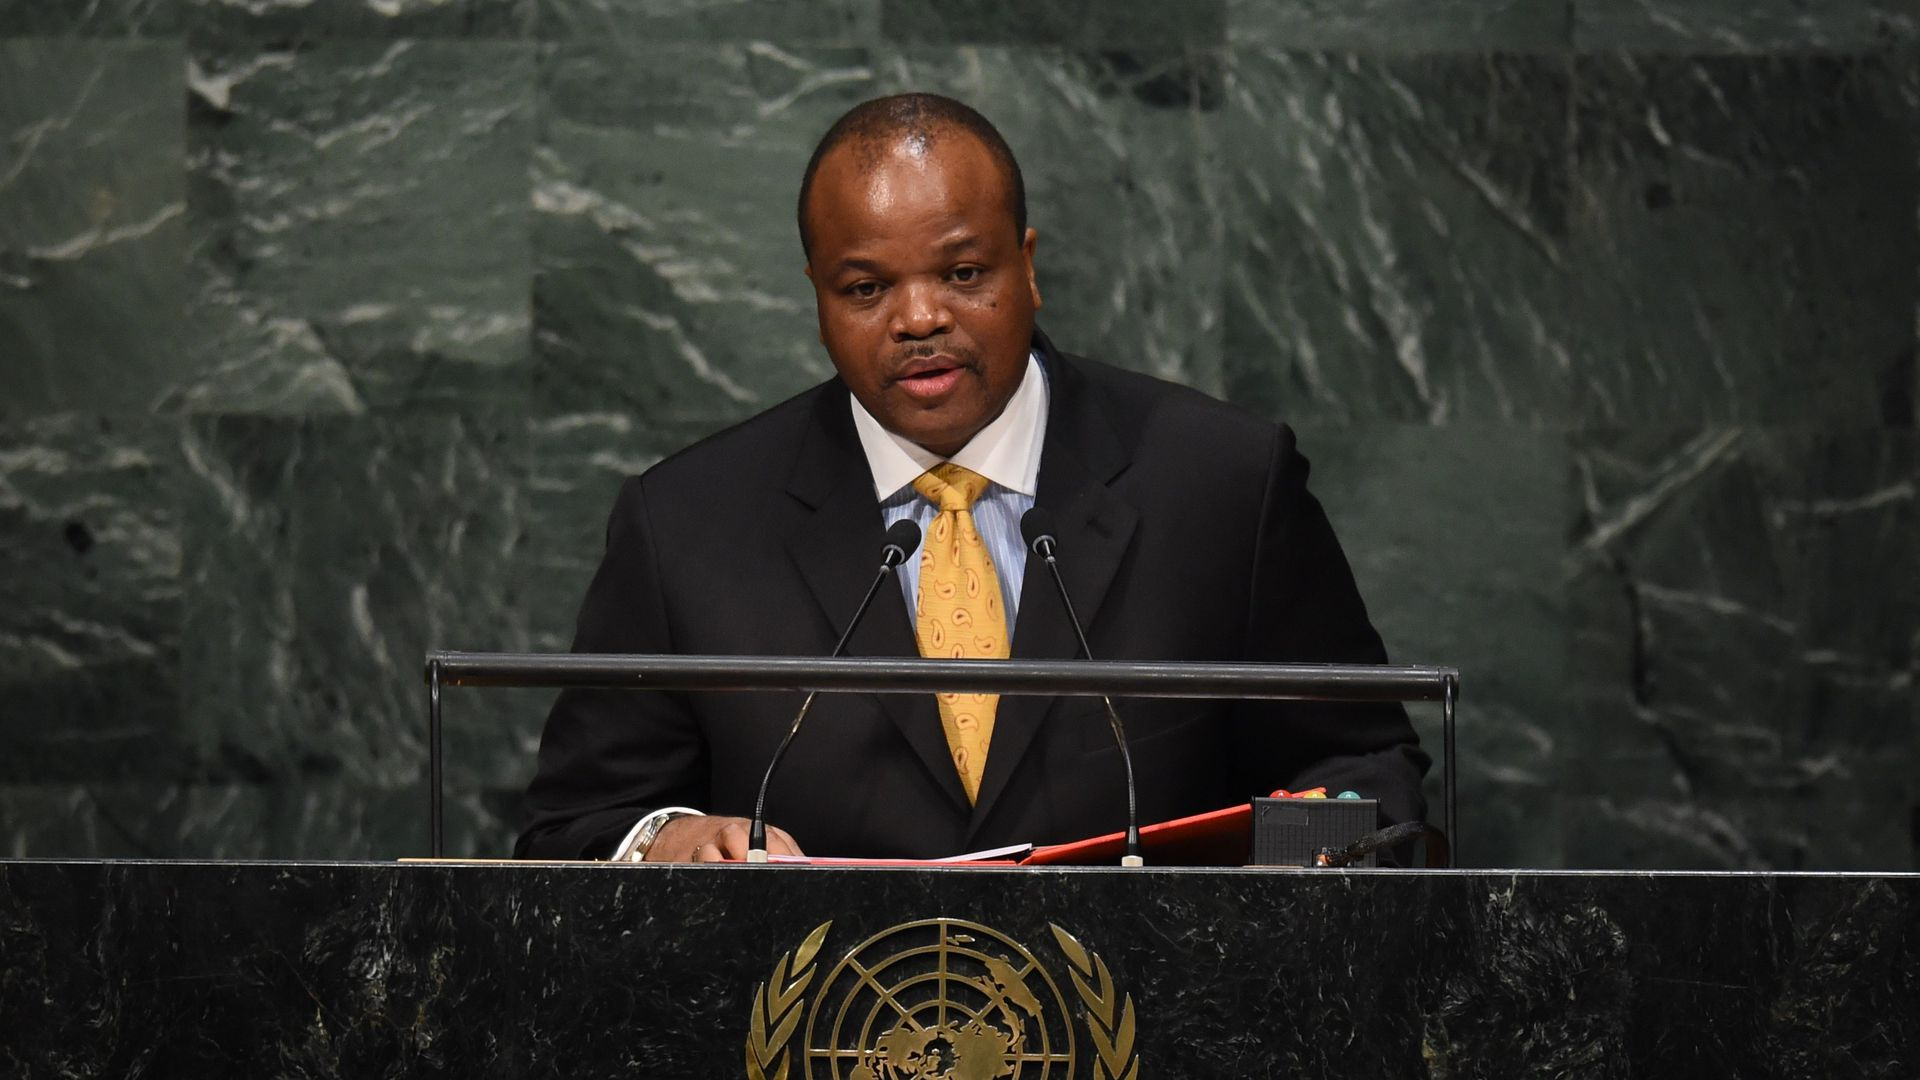 King Mswati III, Head of State of the Kingdom of Swaziland